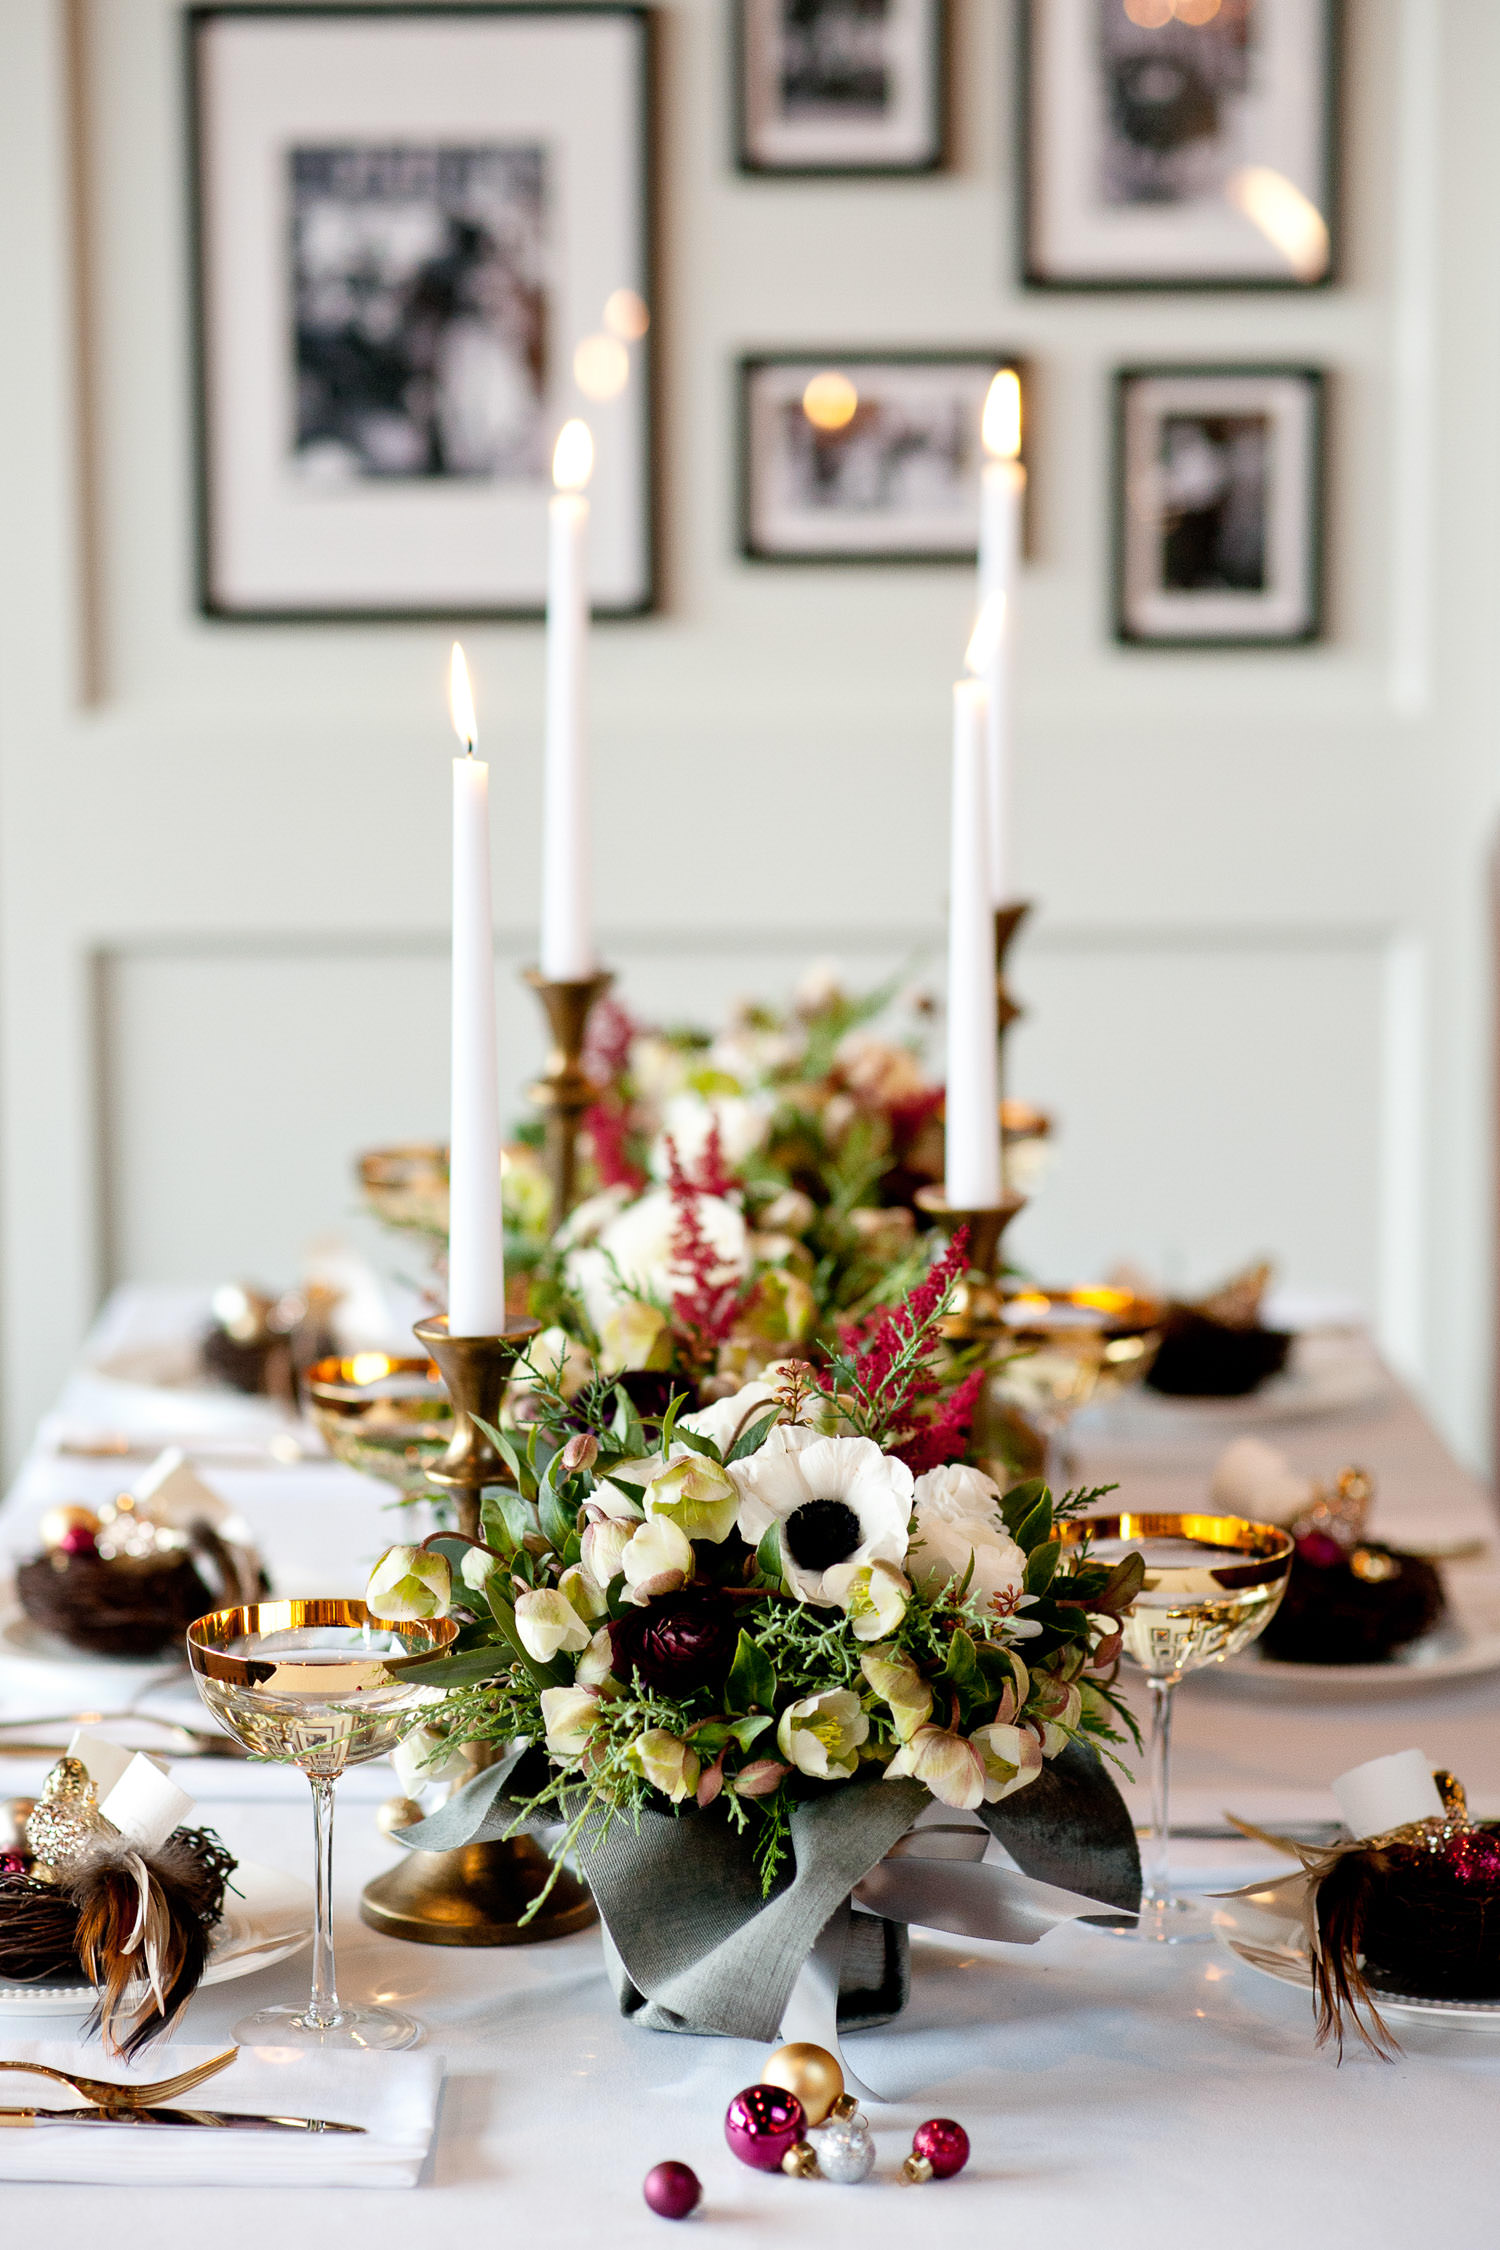 flowers and candles on a holiday table captured by Tara Whittaker Photography